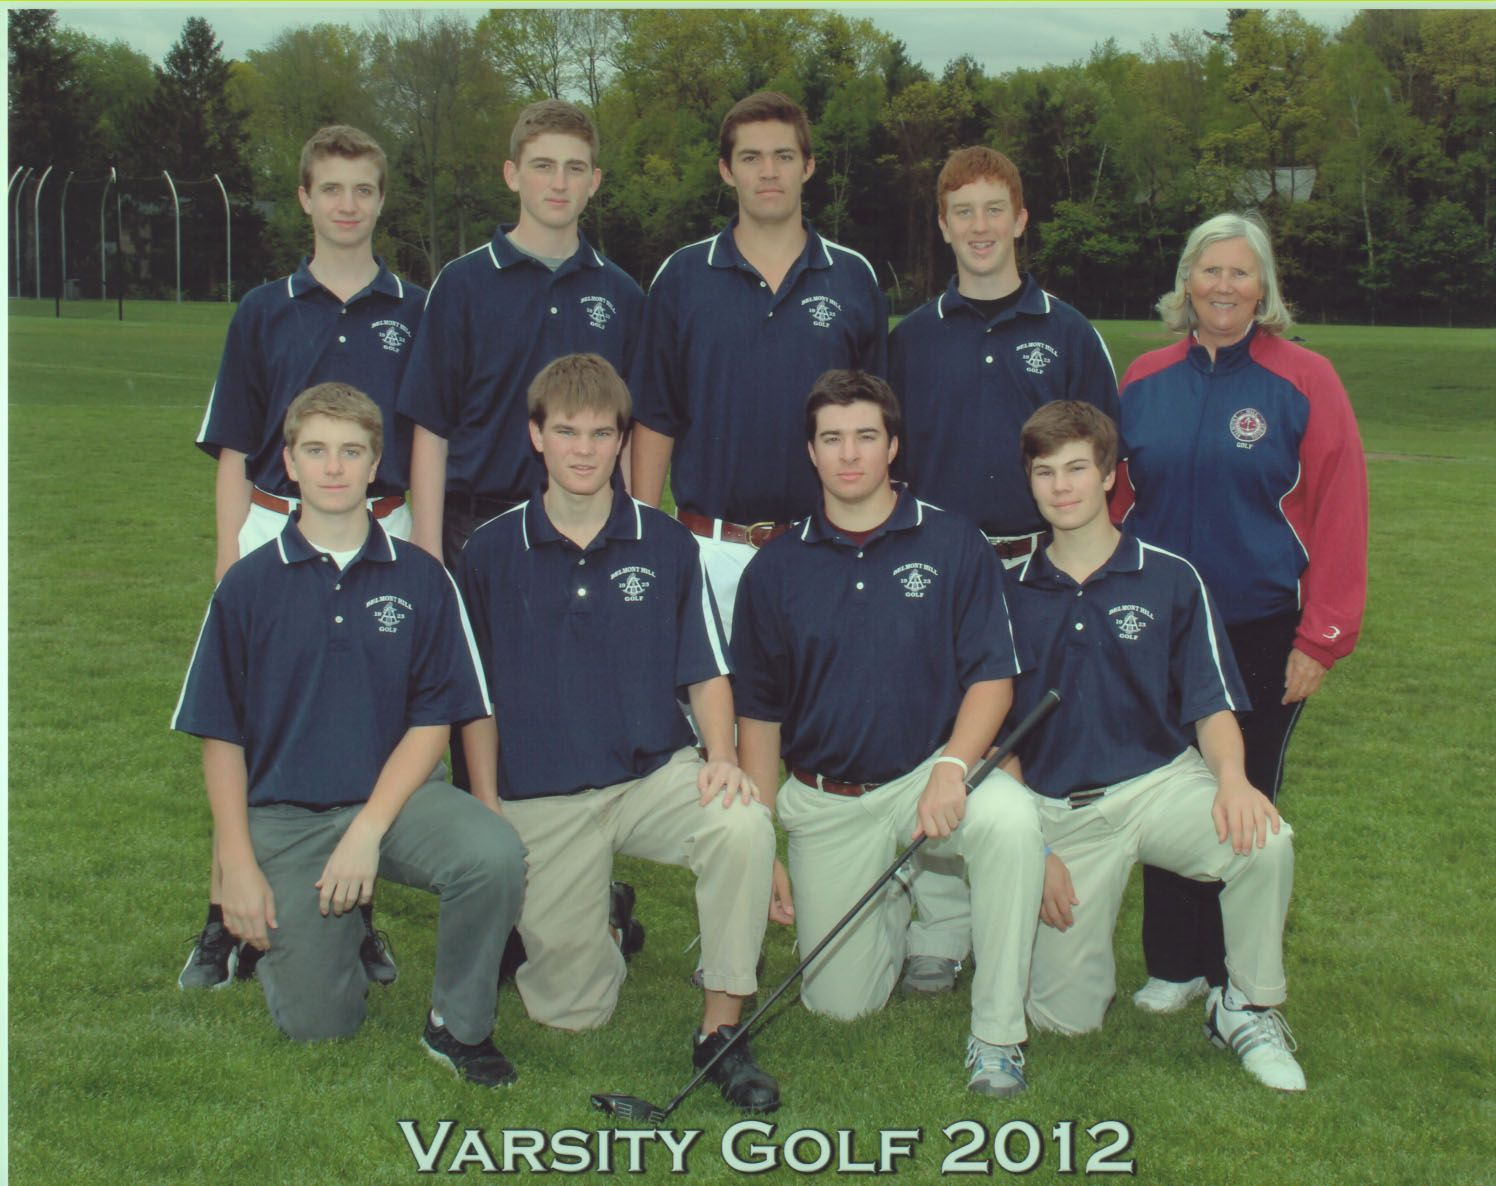 First Row: L-R- Colin Sargis, P. Burpee(Capt), John Lazor, Back Row- L-R- Riley Whitham, Shane Rossi, Tripp Hostetter, Joe Lynch, Coach Patti Whitney. Missing is Jack Kinlan